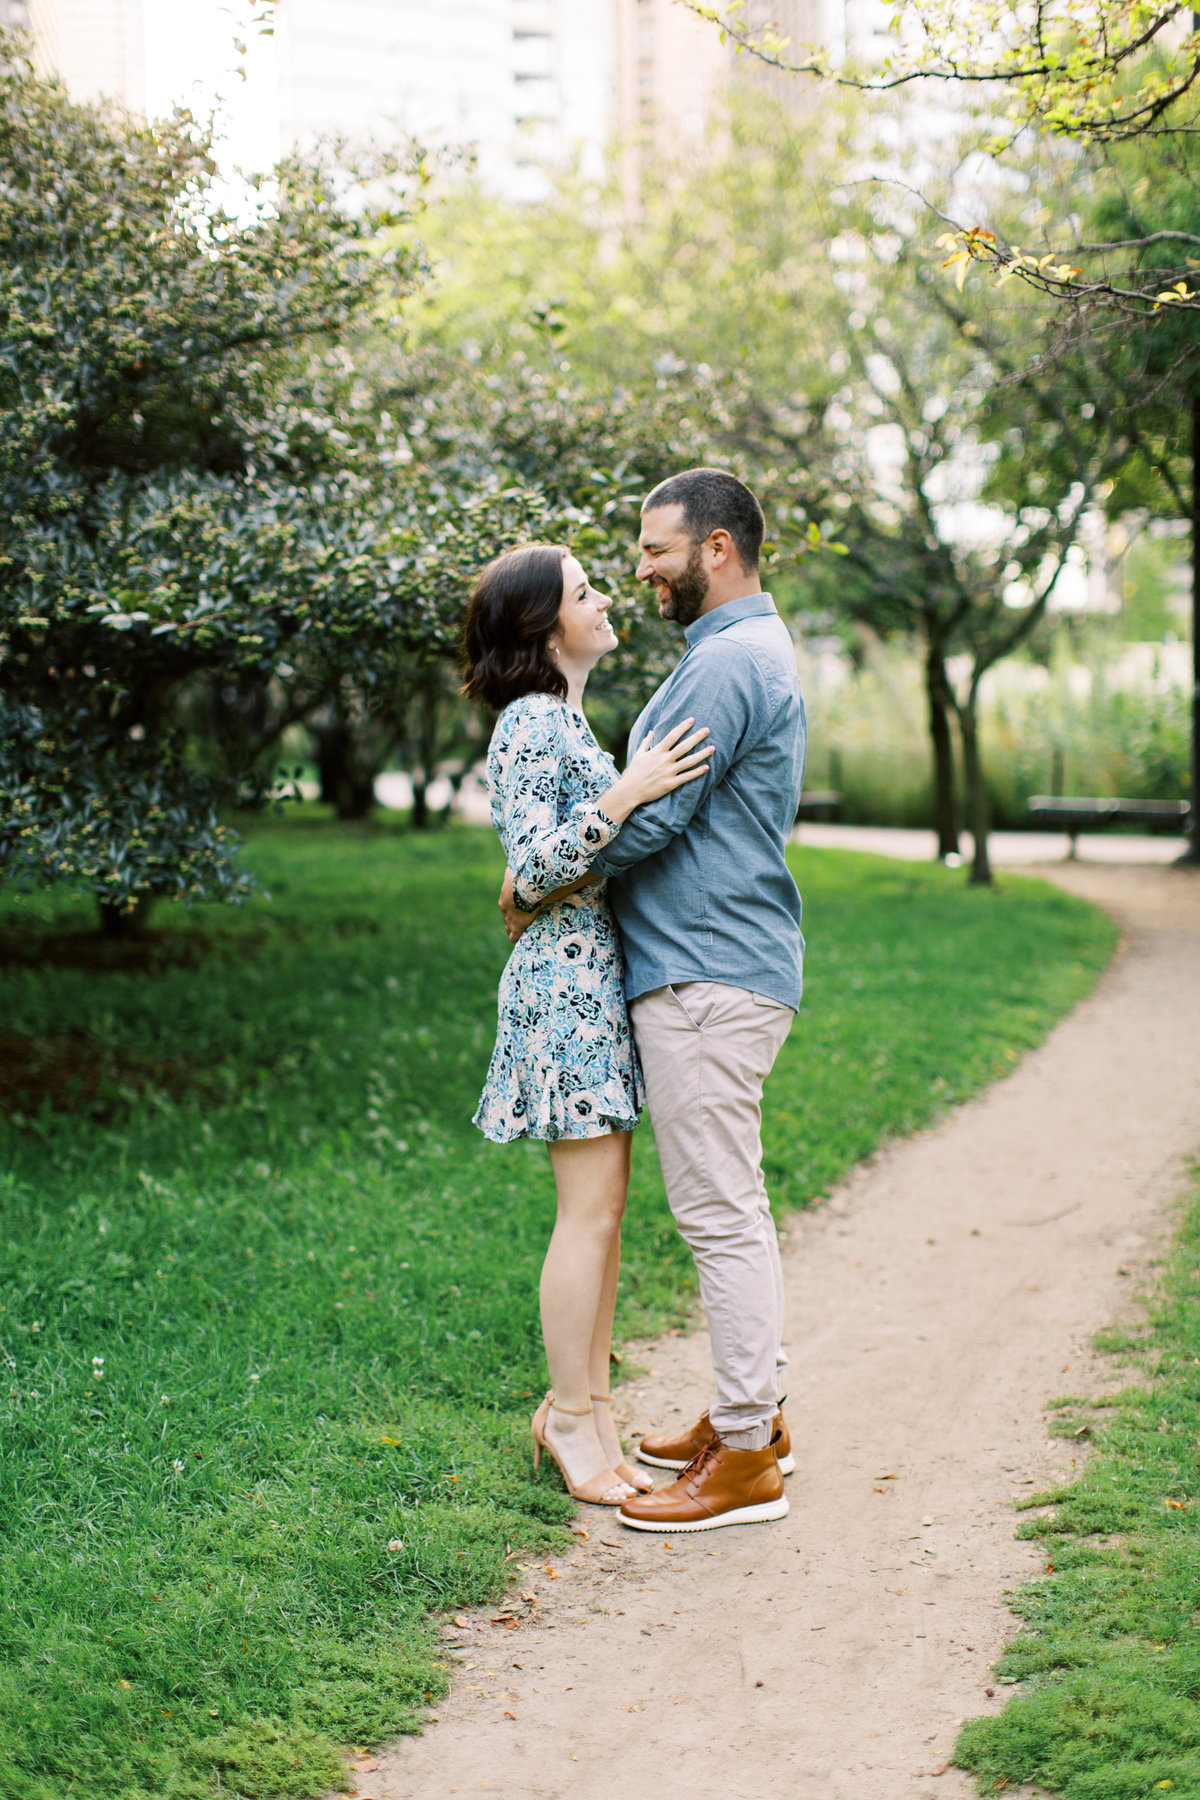 AllieDavid_Engagement_September042019_84